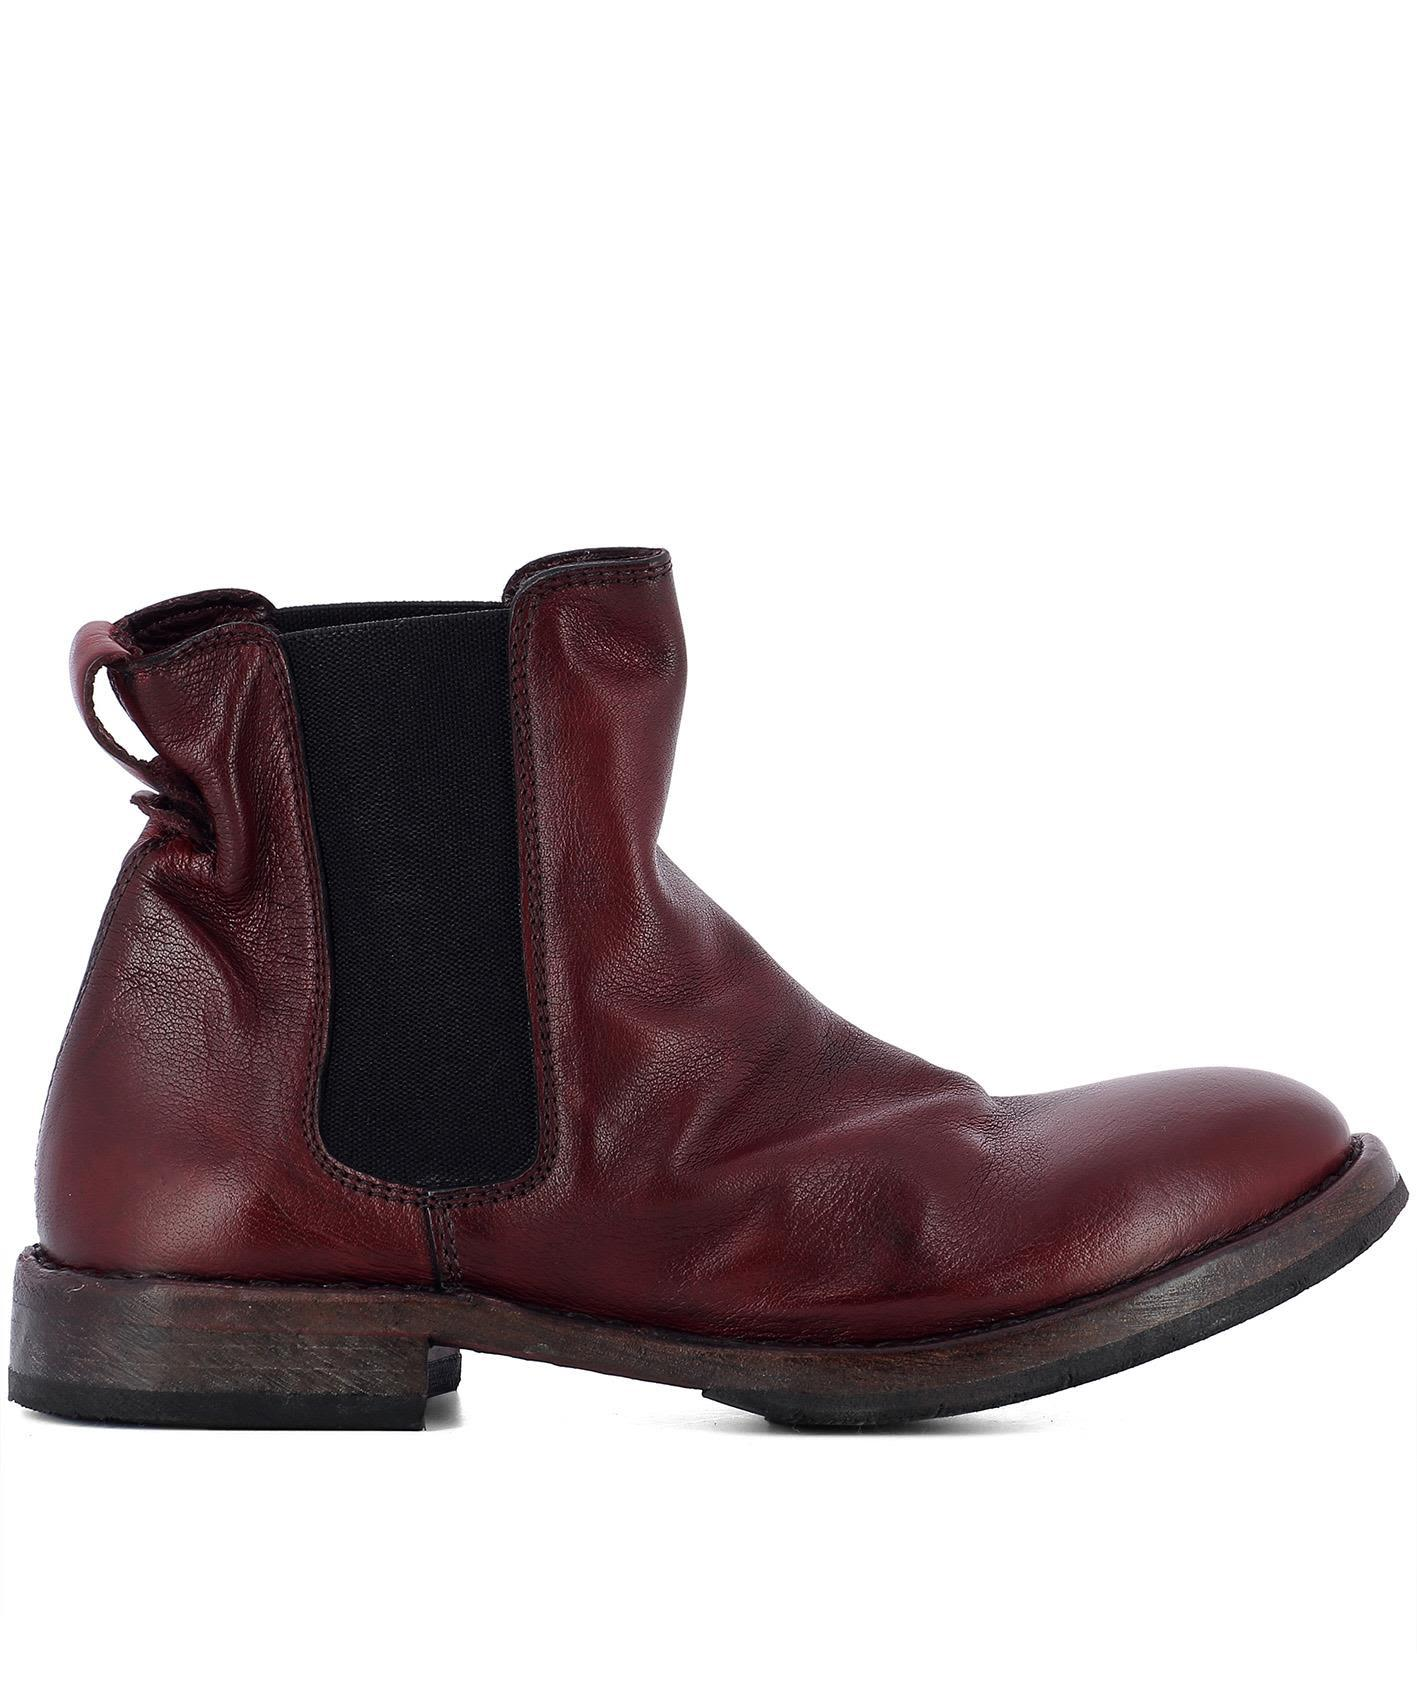 Moma Red Leather Ankle Boots